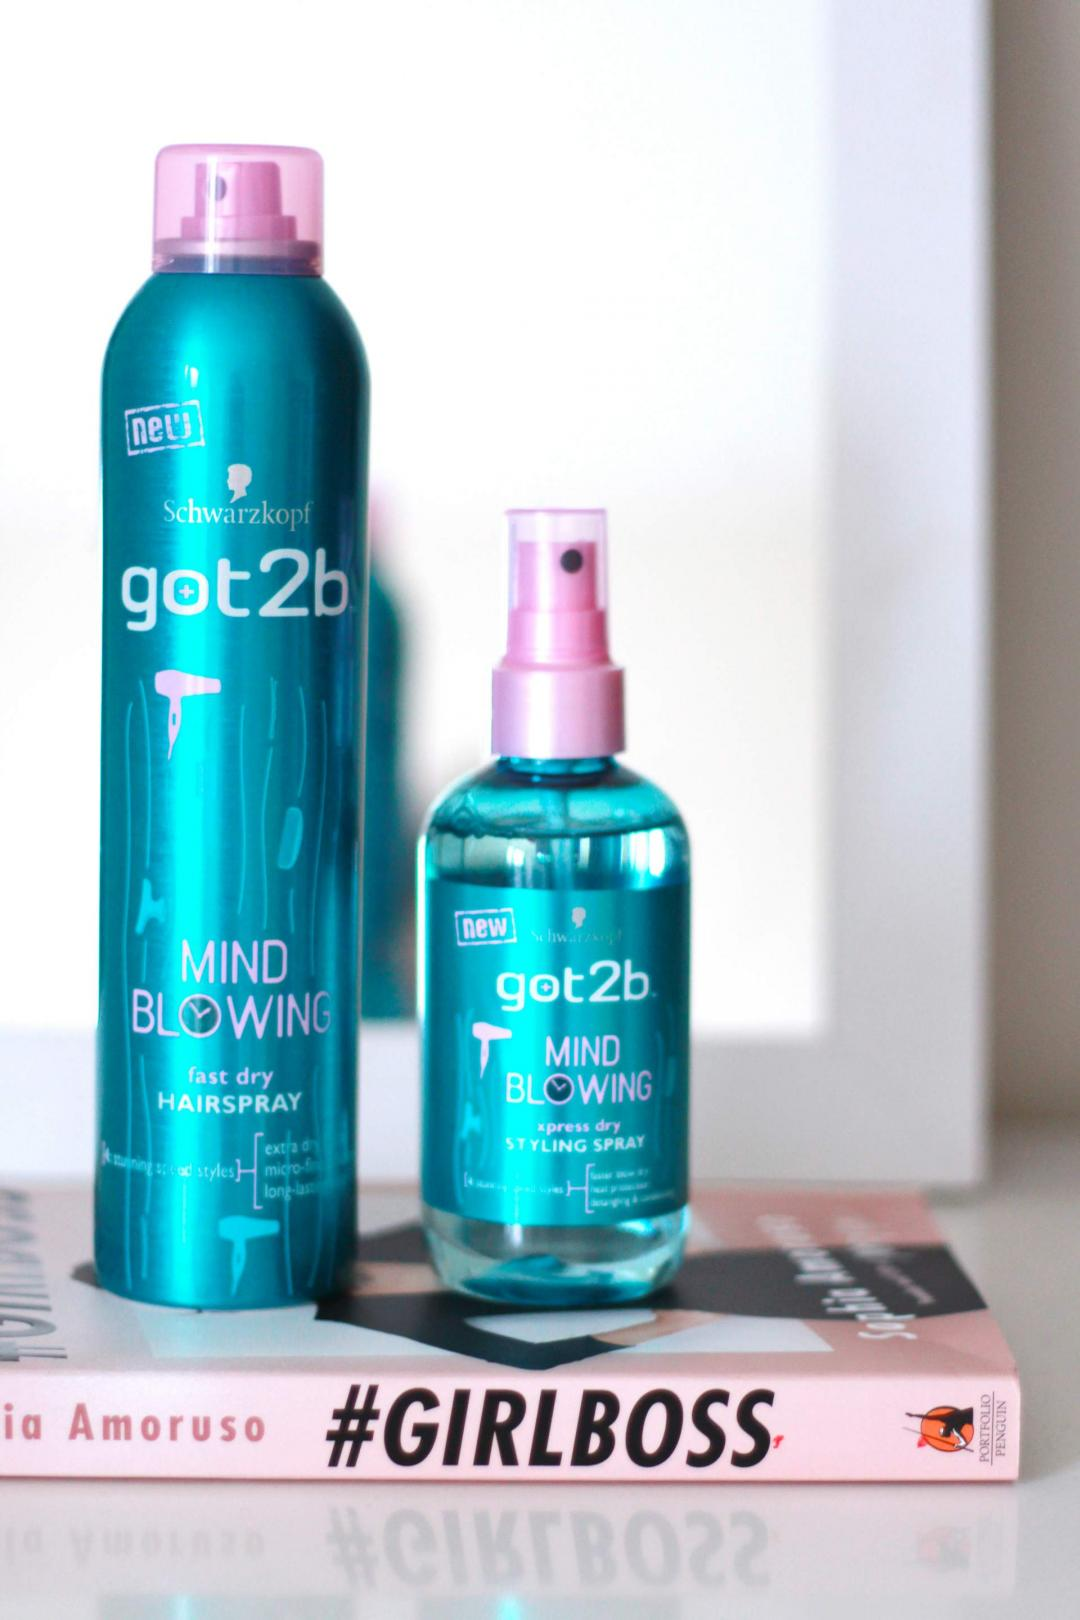 schwarzkopft-got2be-mind-blowing-hairspray-styling-spray.jpg